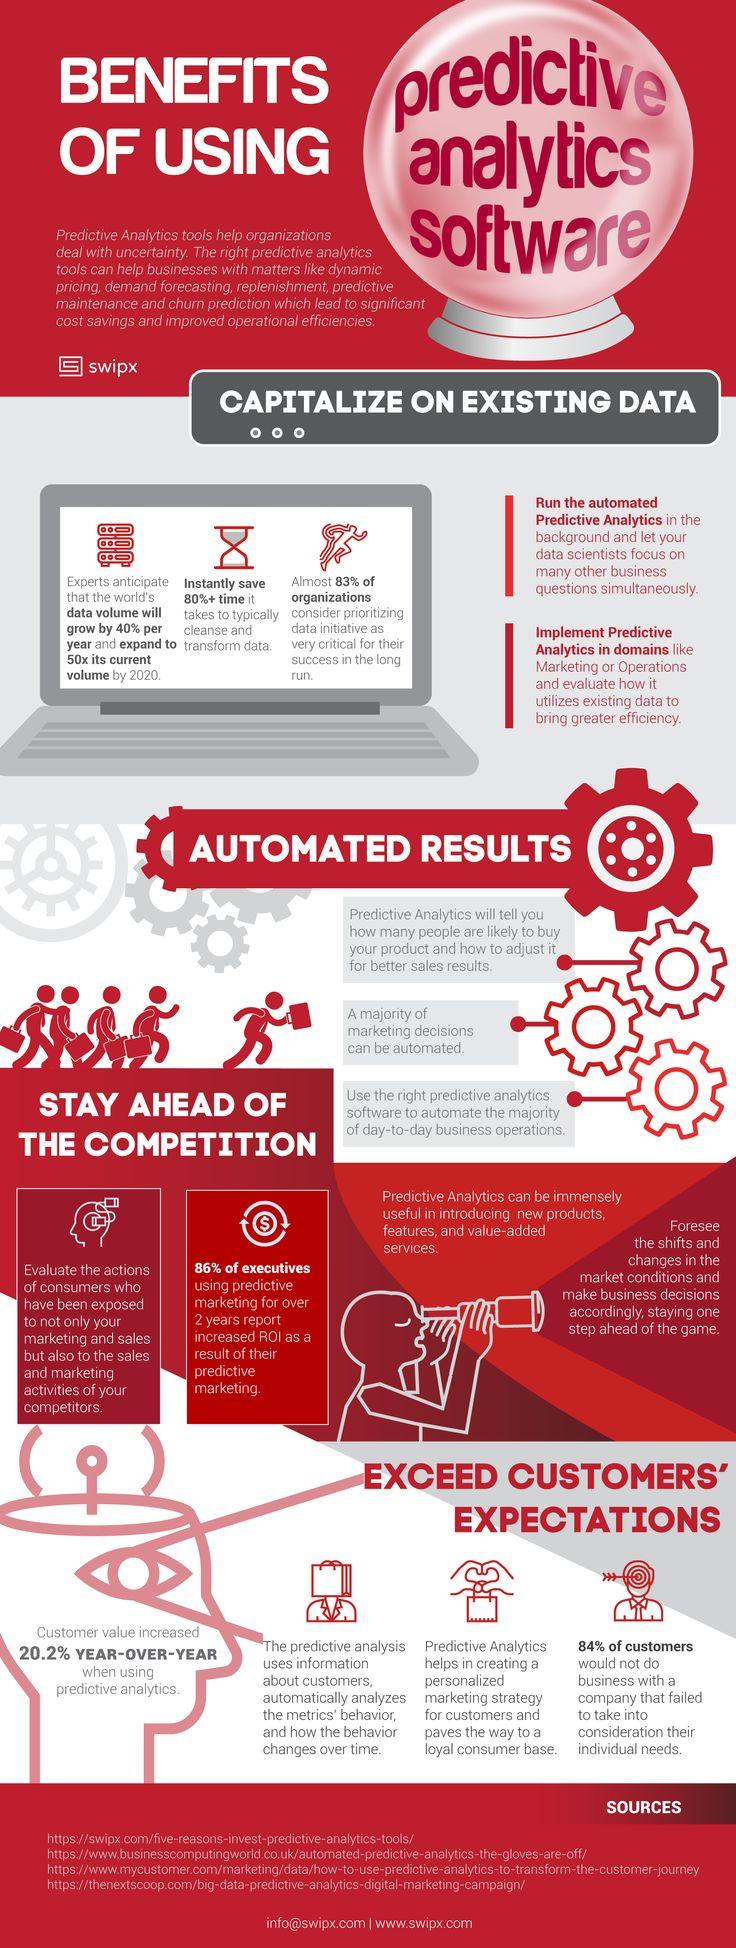 Psychology-Infographic-Infographic-about-the-benefits-of-using-Predictive Psychology Infographic : Infographic about the benefits of using Predictive Analytics. Why should you imp...